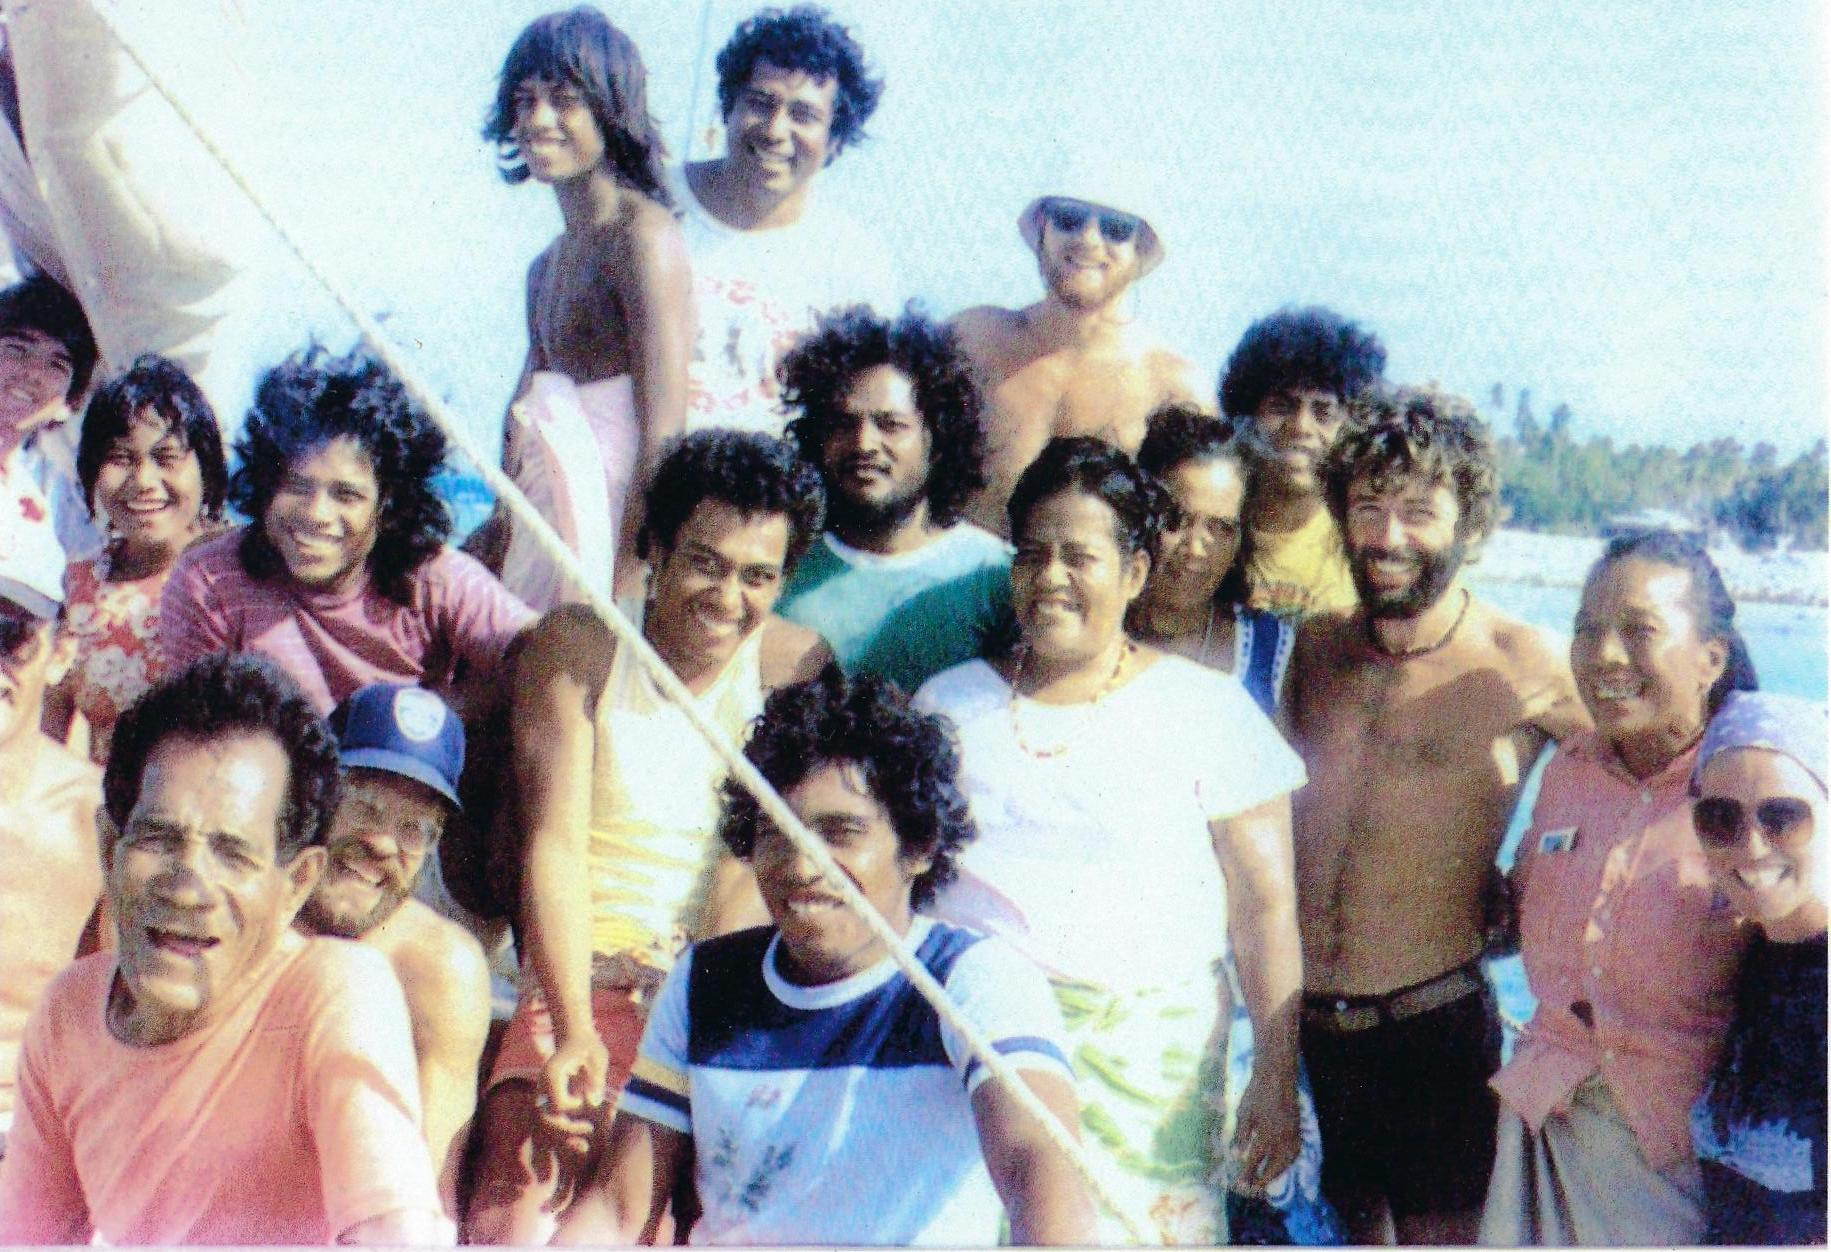 Terry, Bruno, and Fanning Island friends 1980's